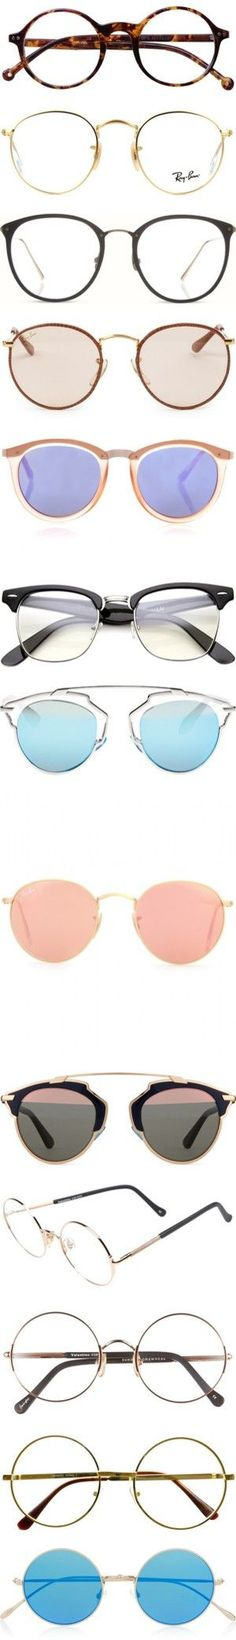 glasses by sabina-127 on Polyvore featuring women's fashion, accessories, eyewear, eyeglasses, glasses, sunglasses, fillers, retro glasses, vintage round glasses and leopard glasses